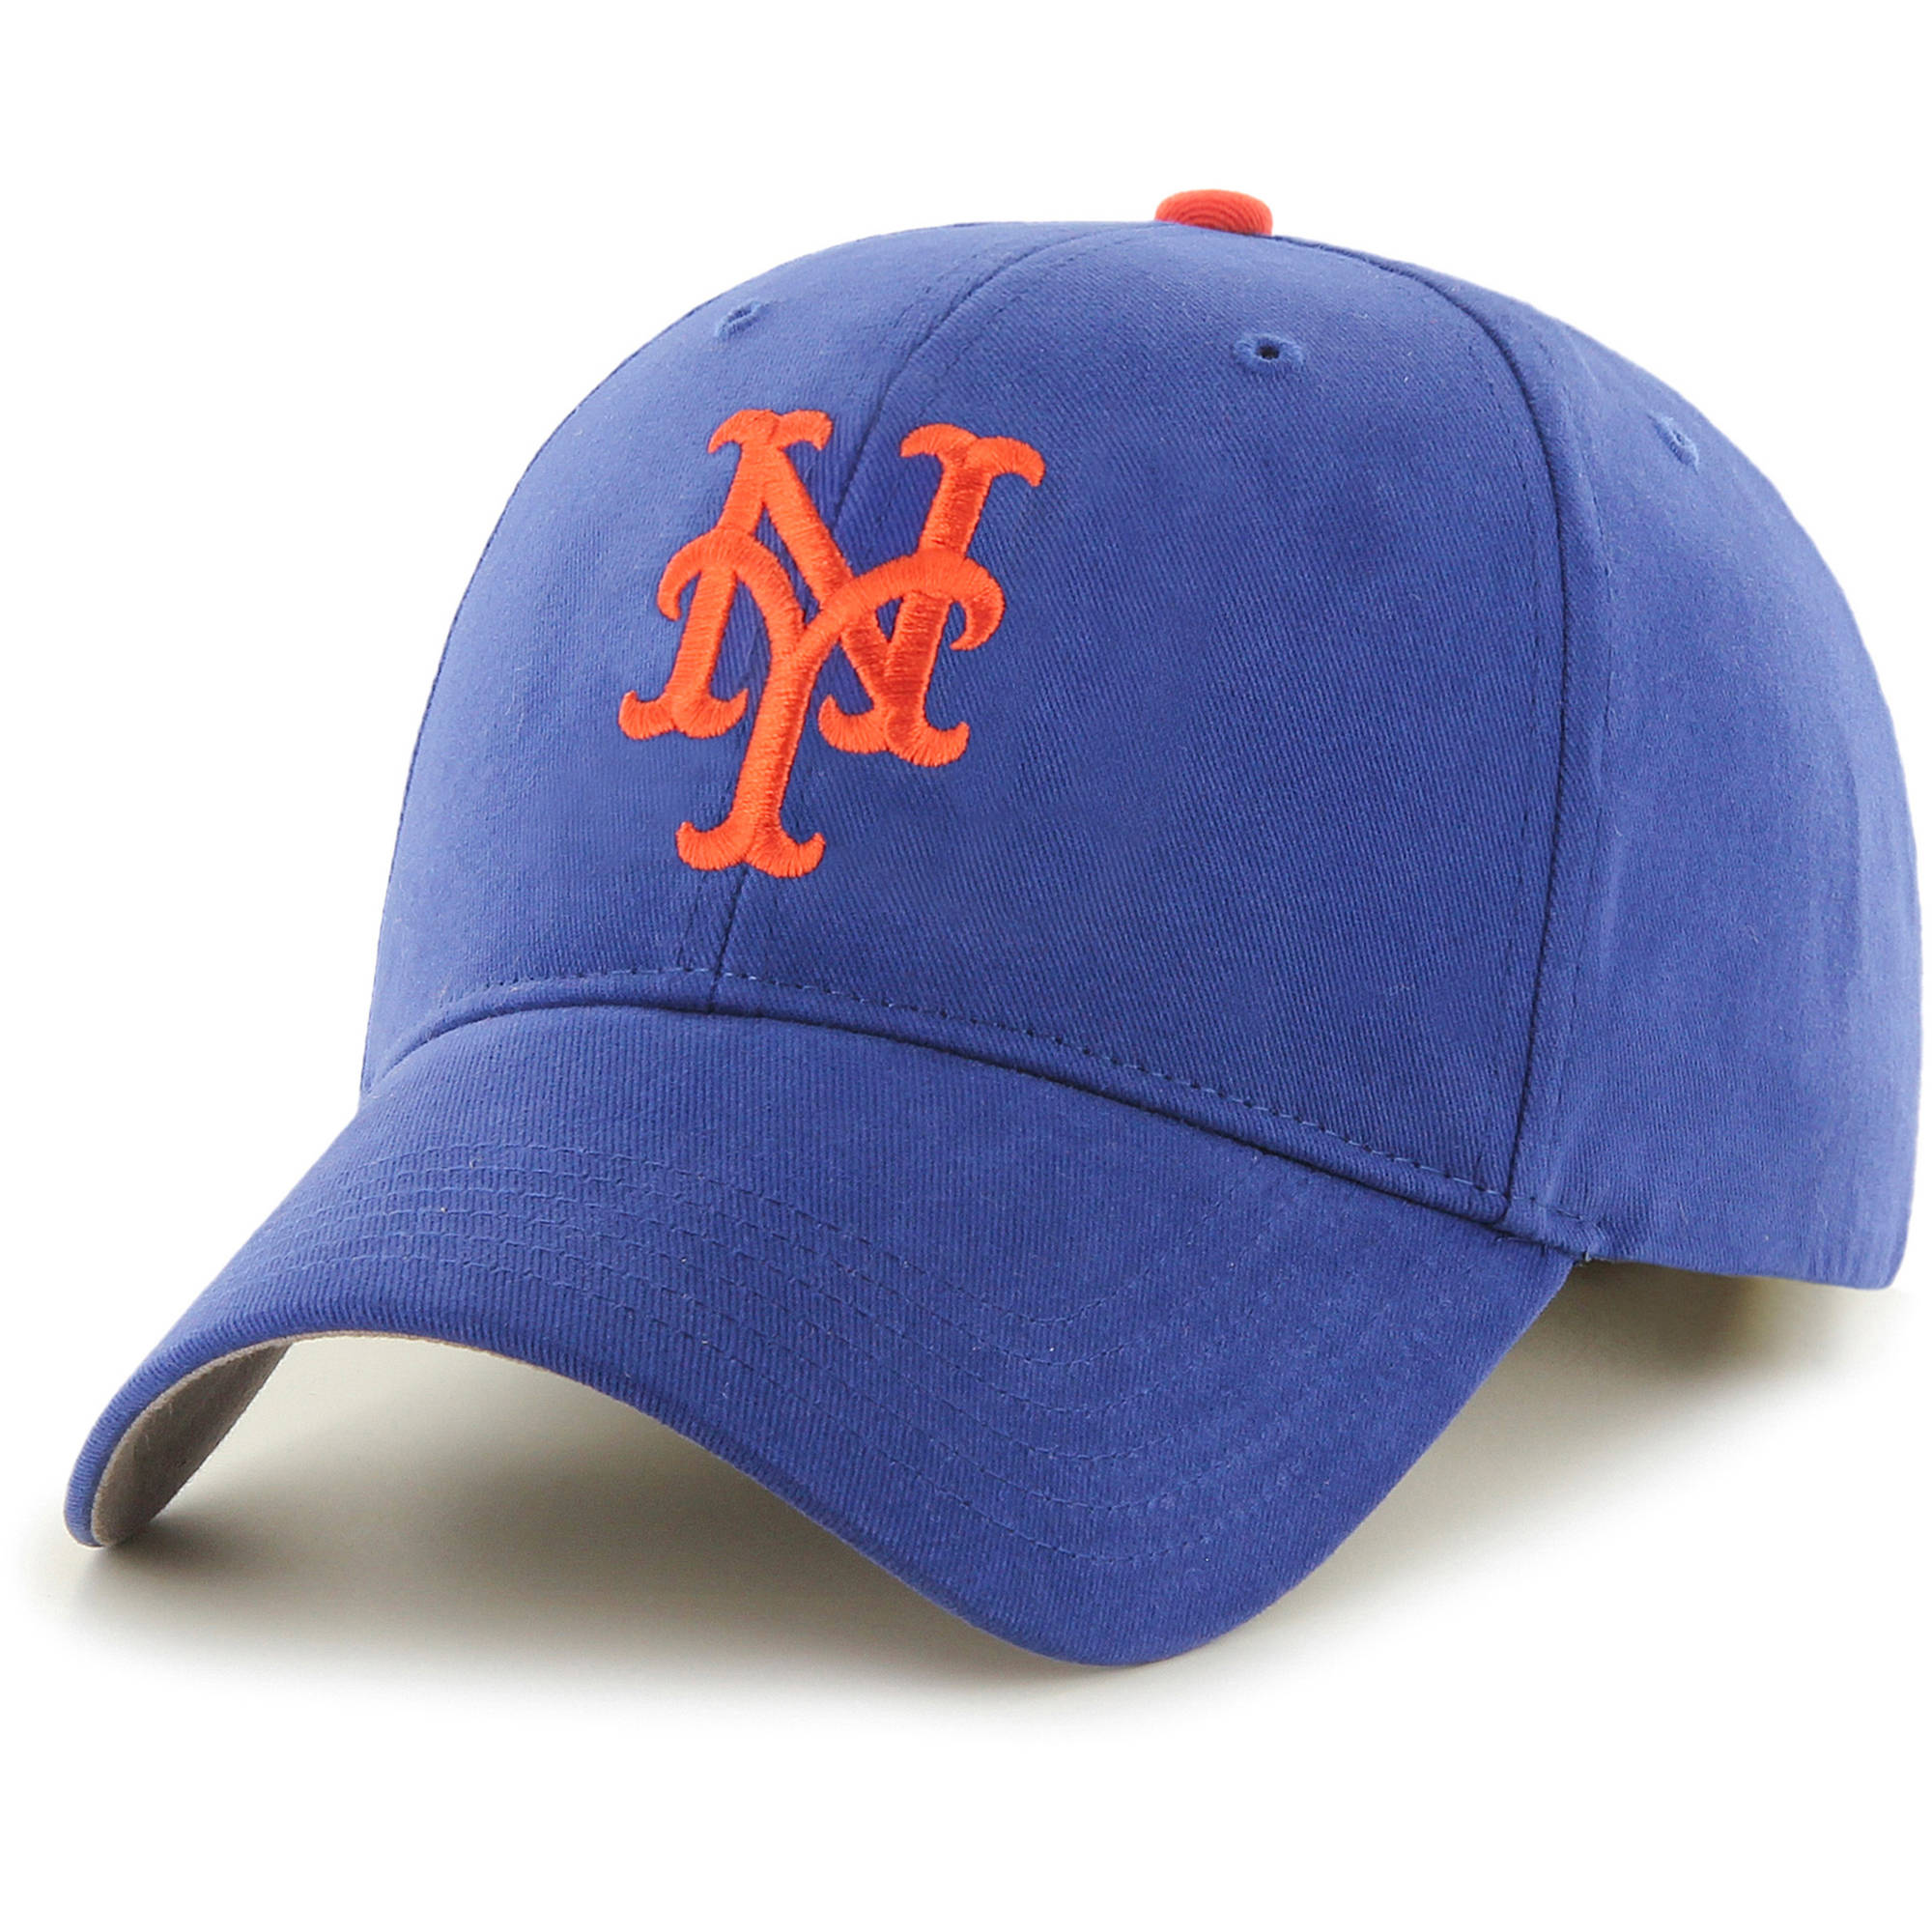 MLB New York Mets Basic Cap / Hat by Fan Favorite